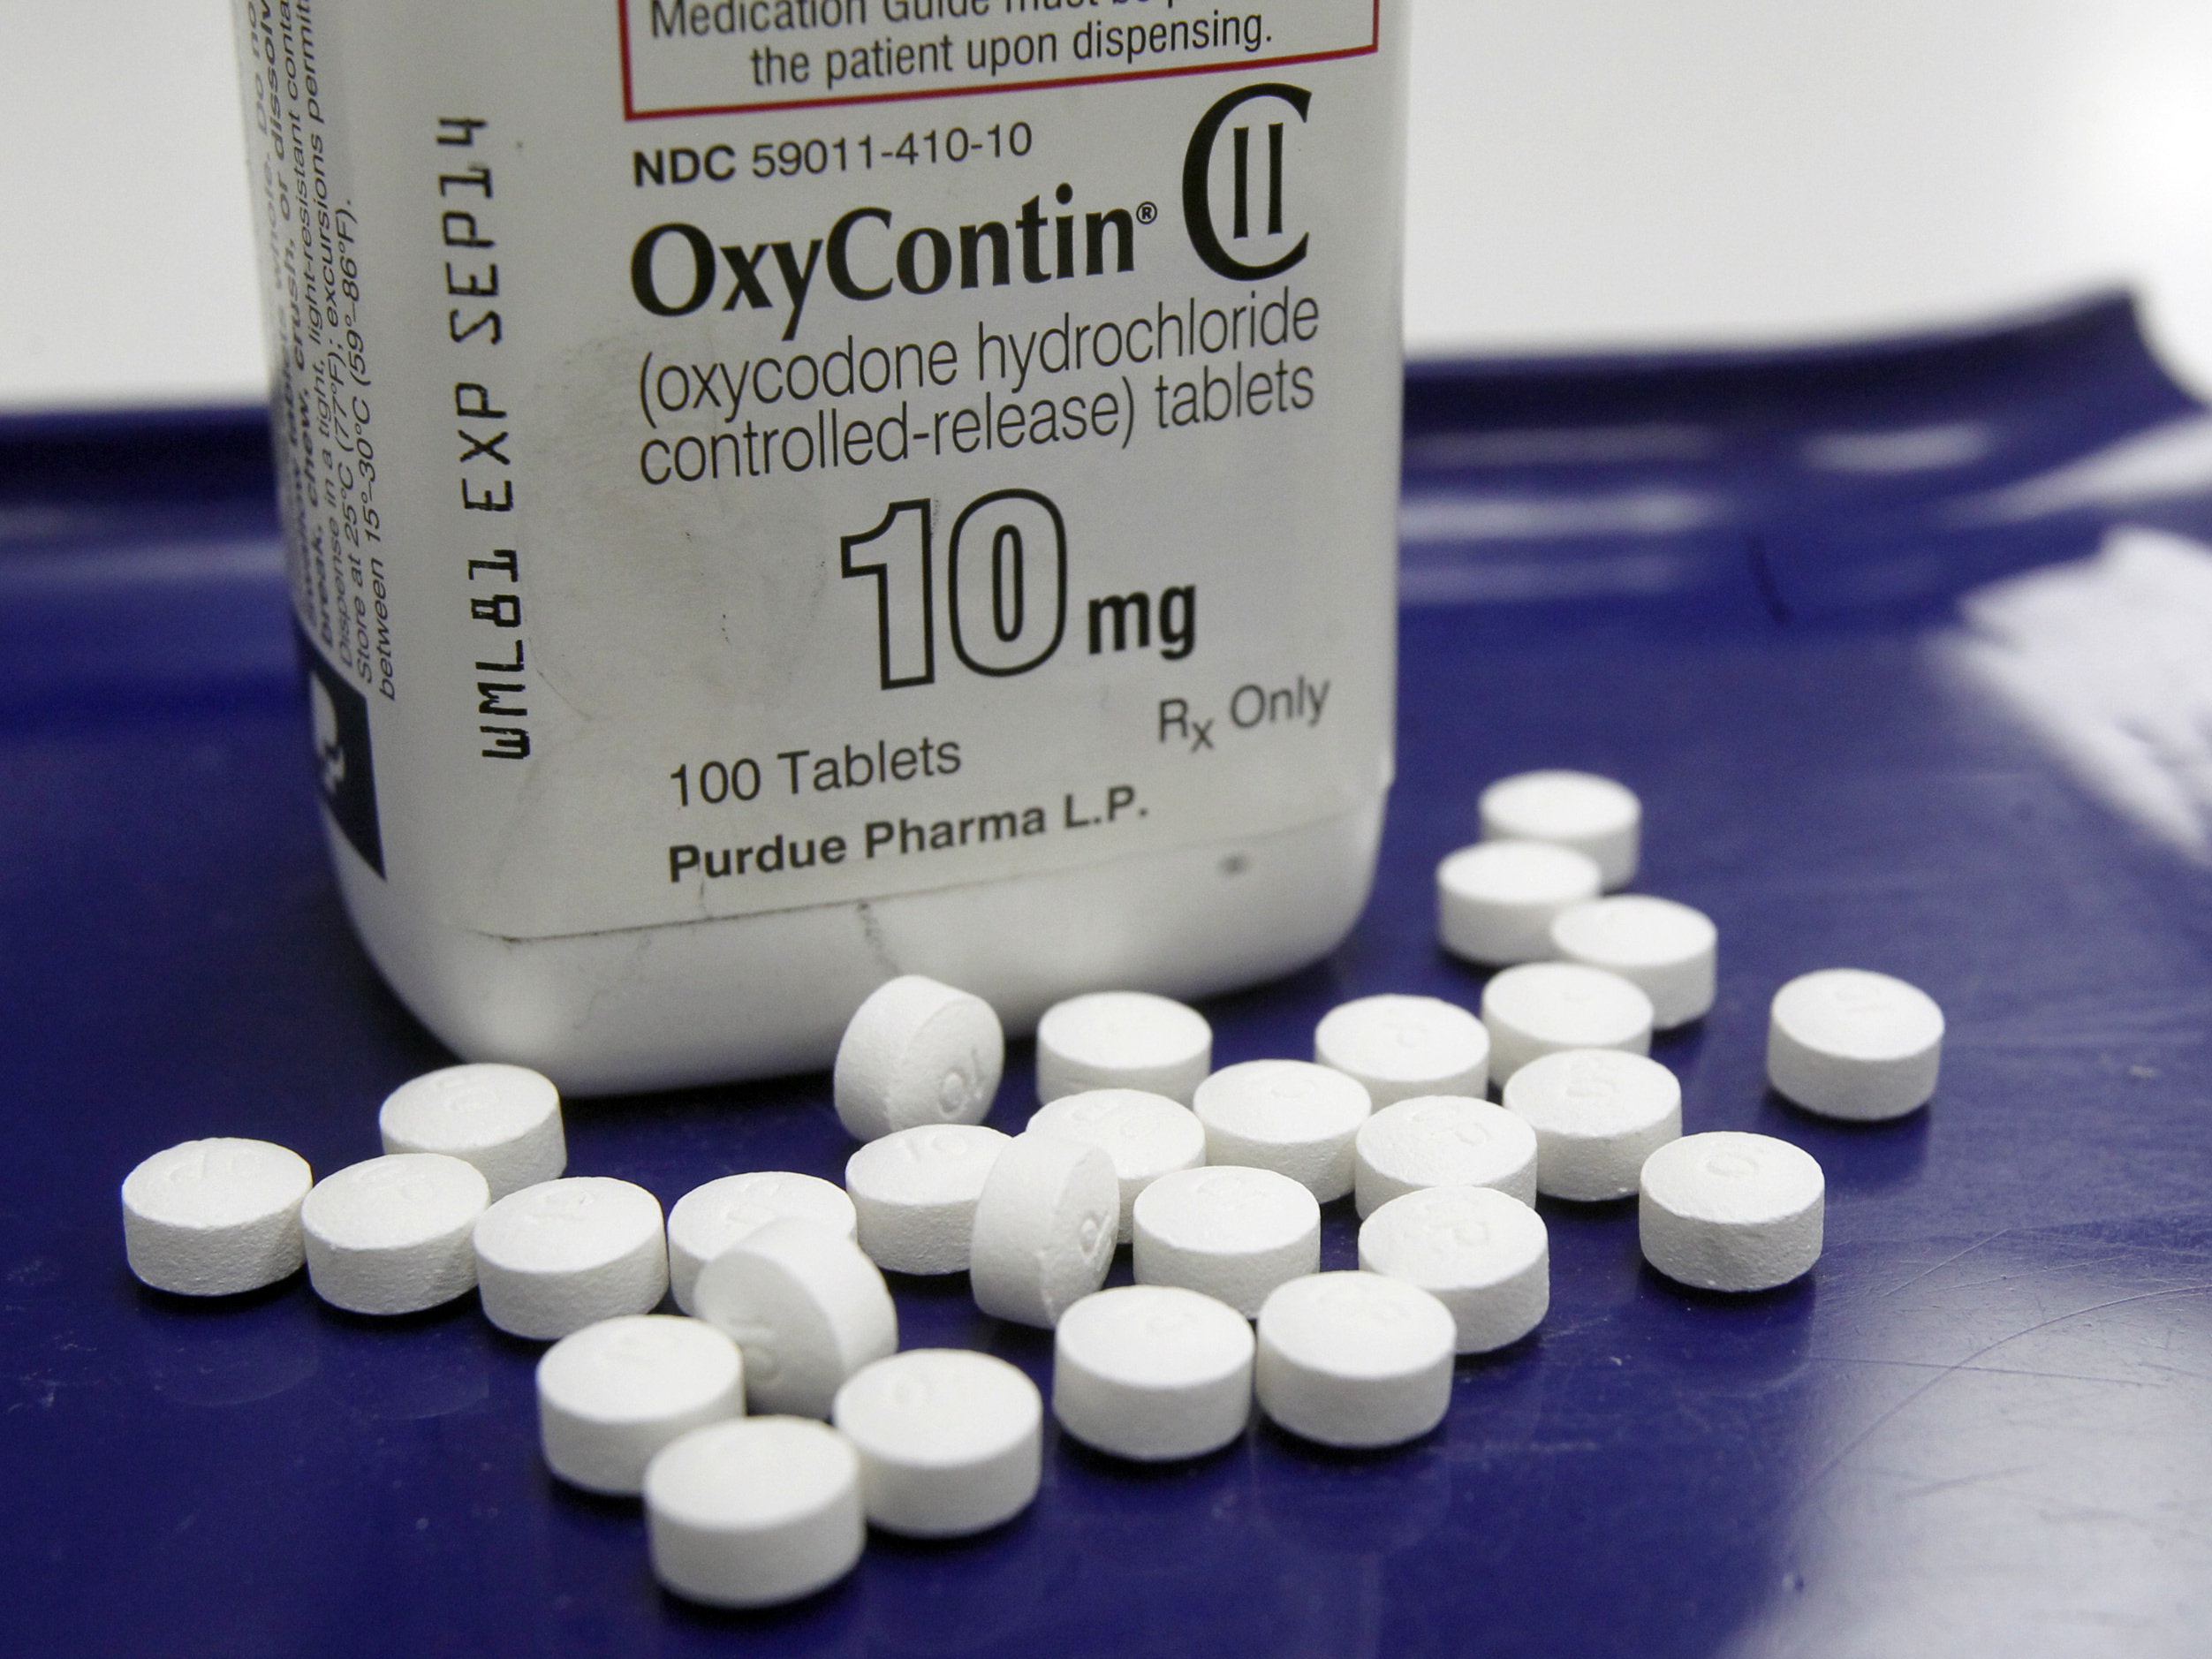 Show Me Pictures Of Qxycodone 114